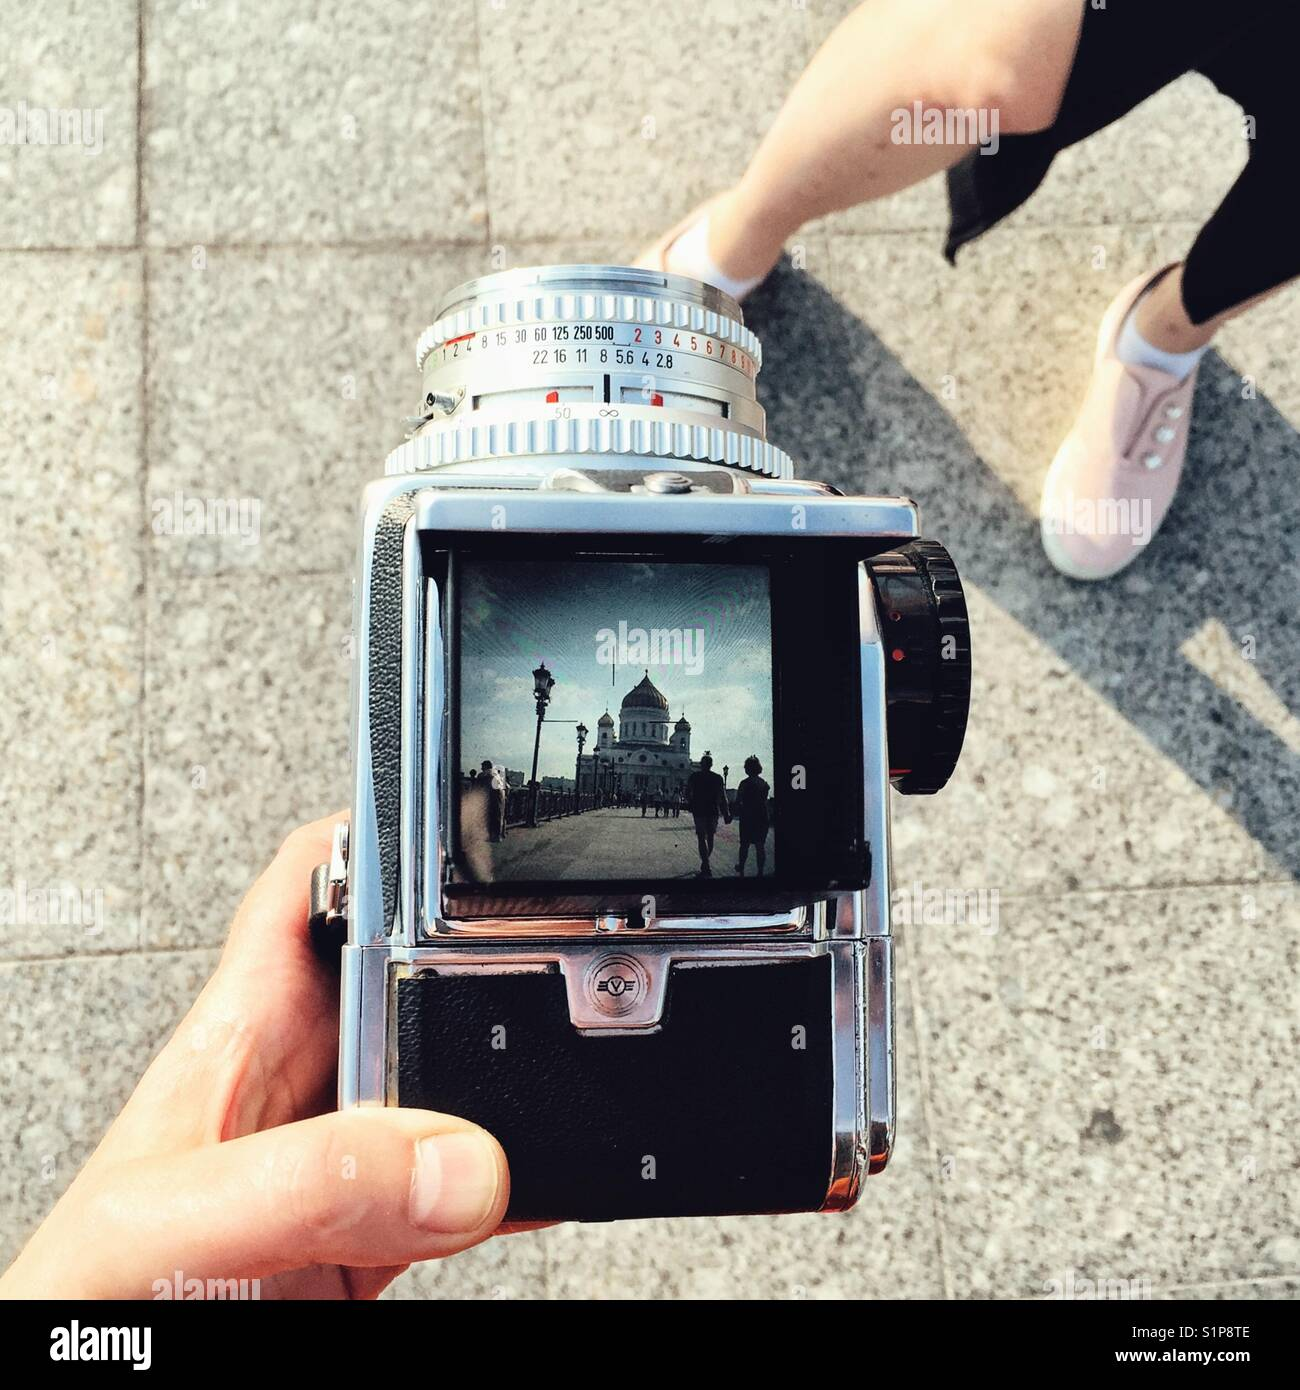 Cathedral of Christ the Savior in Moscow, Russia, photographed through vintage film medium format camera Hasselblad - Stock Image